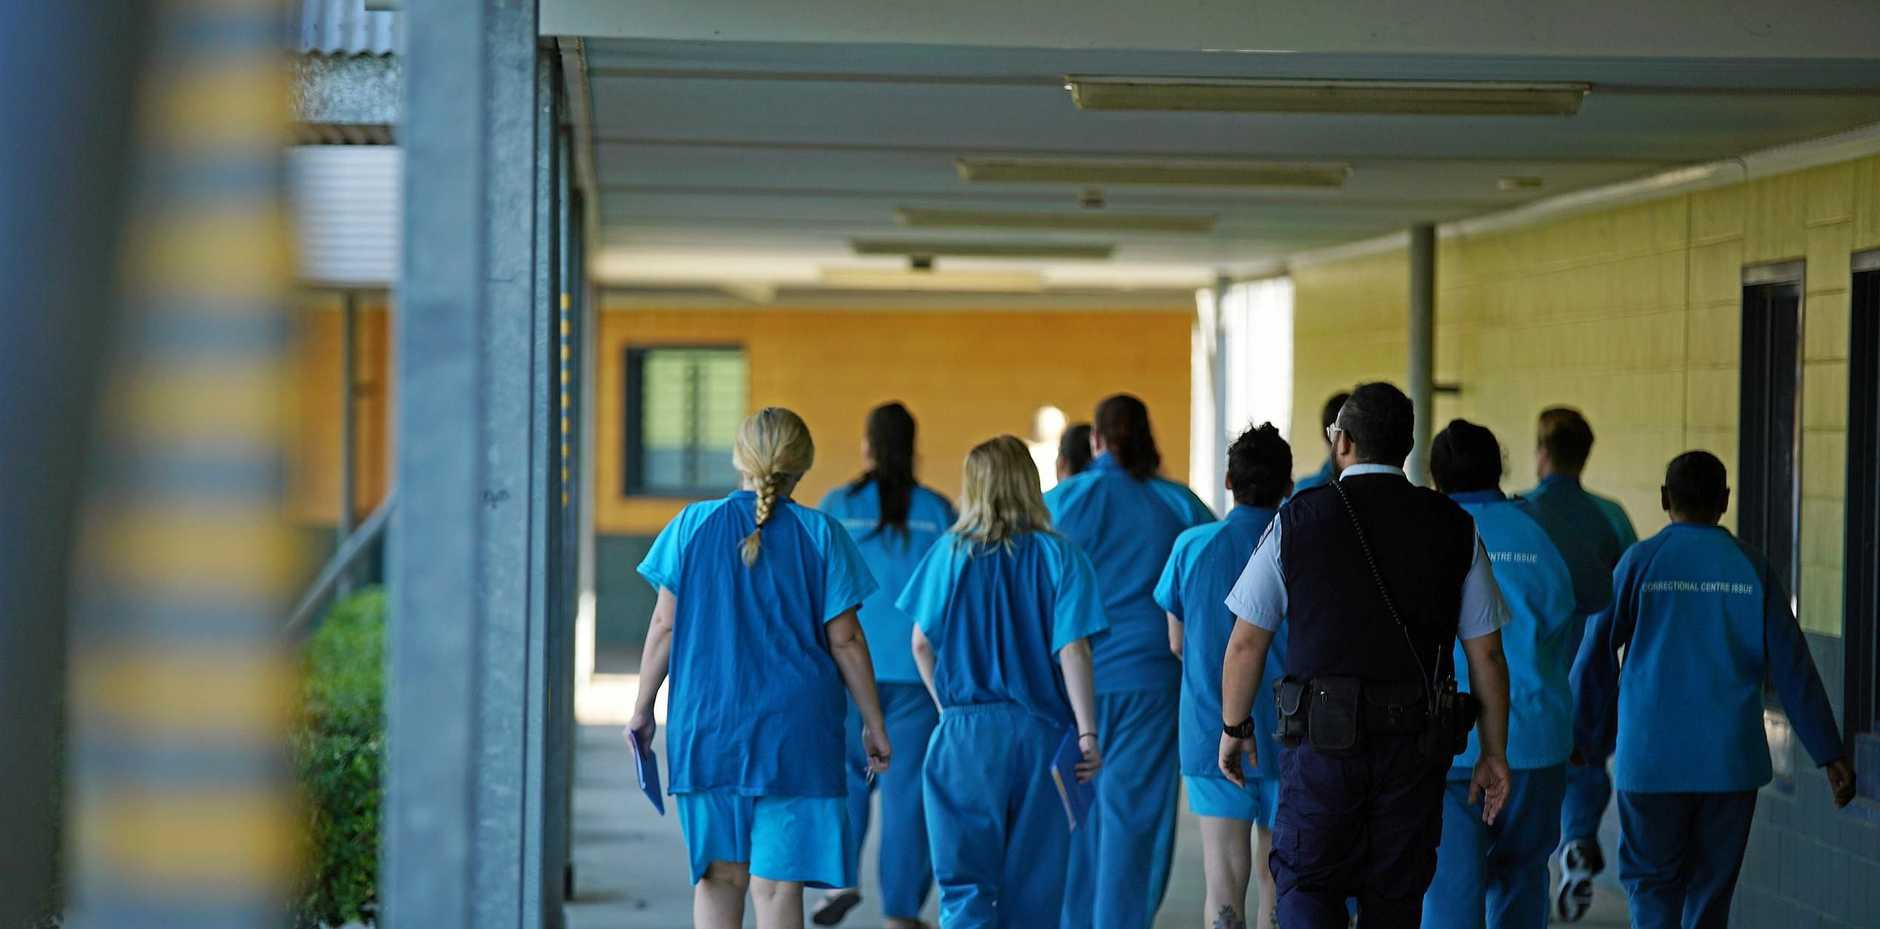 Female prisoners walking in the Brisbane Women's Correctional Centre in Queensland. A Human Rights Watch report found prisoners with disabilities are often neglected and abused.